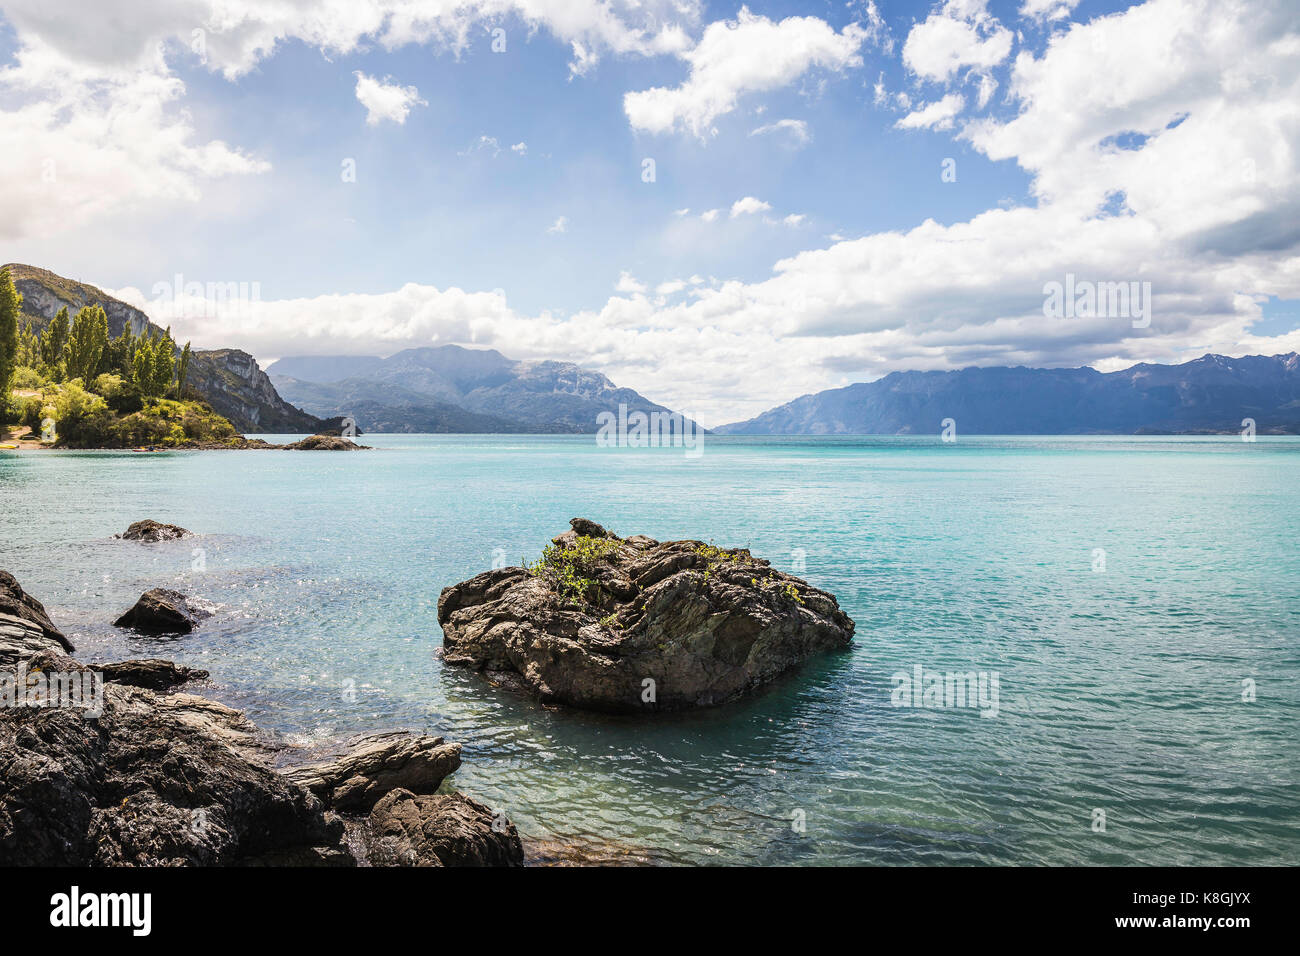 General Carrera Lake, Aysen Region, Chile, South America - Stock Image